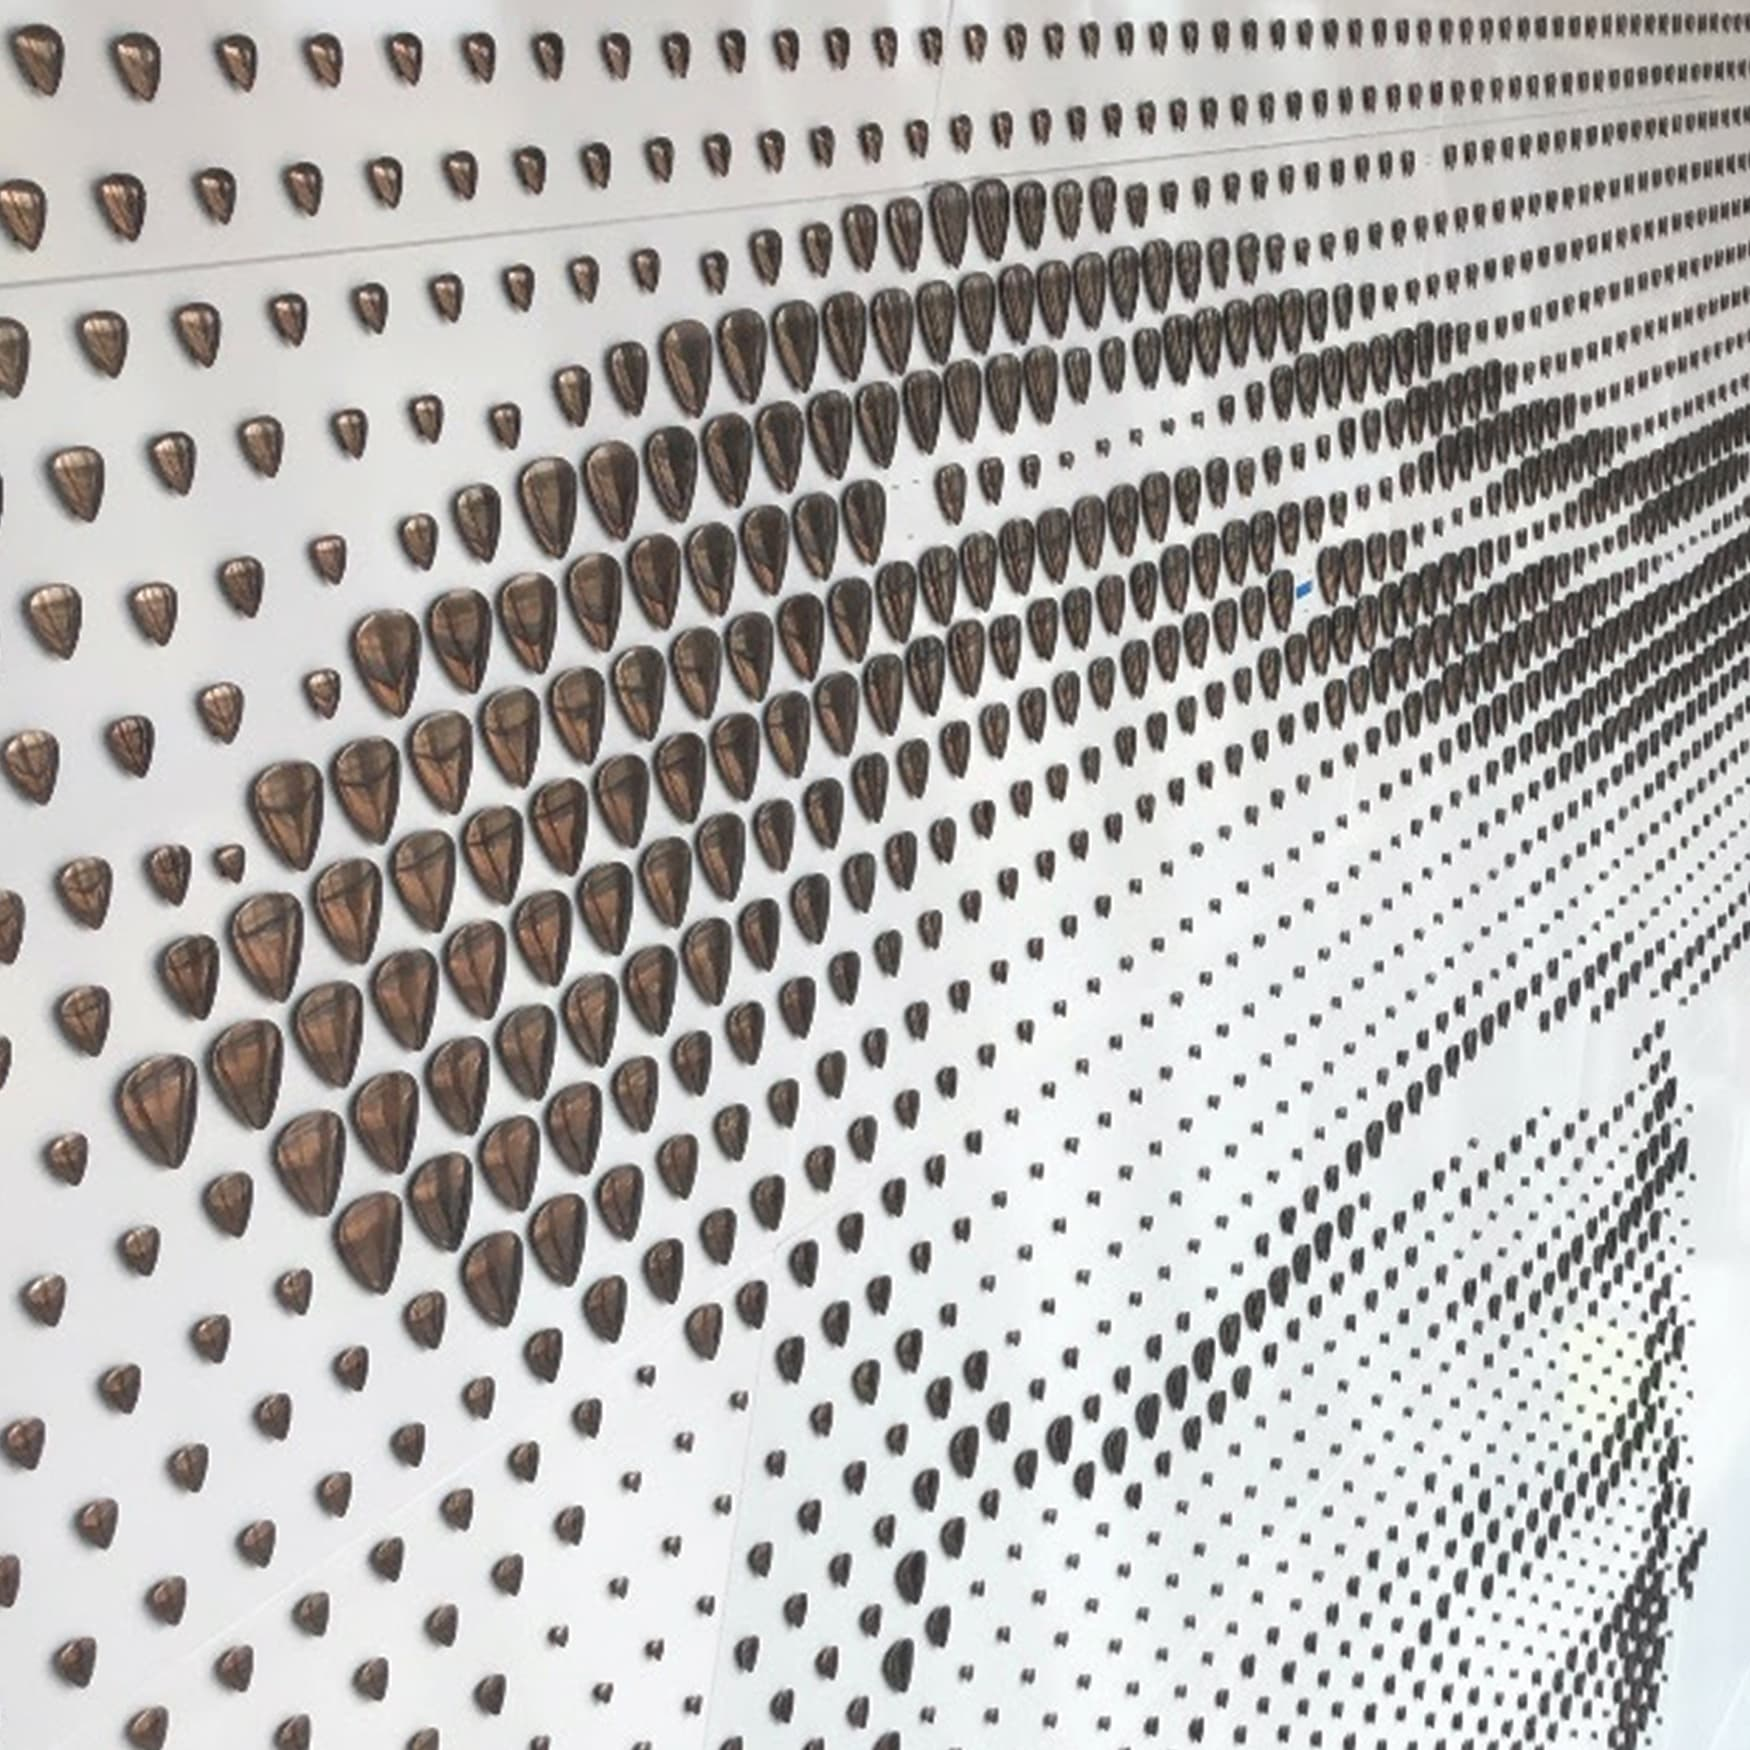 Detail of guitar pick installation on donor wall of Buddy Holly Hall in Dallas, TX